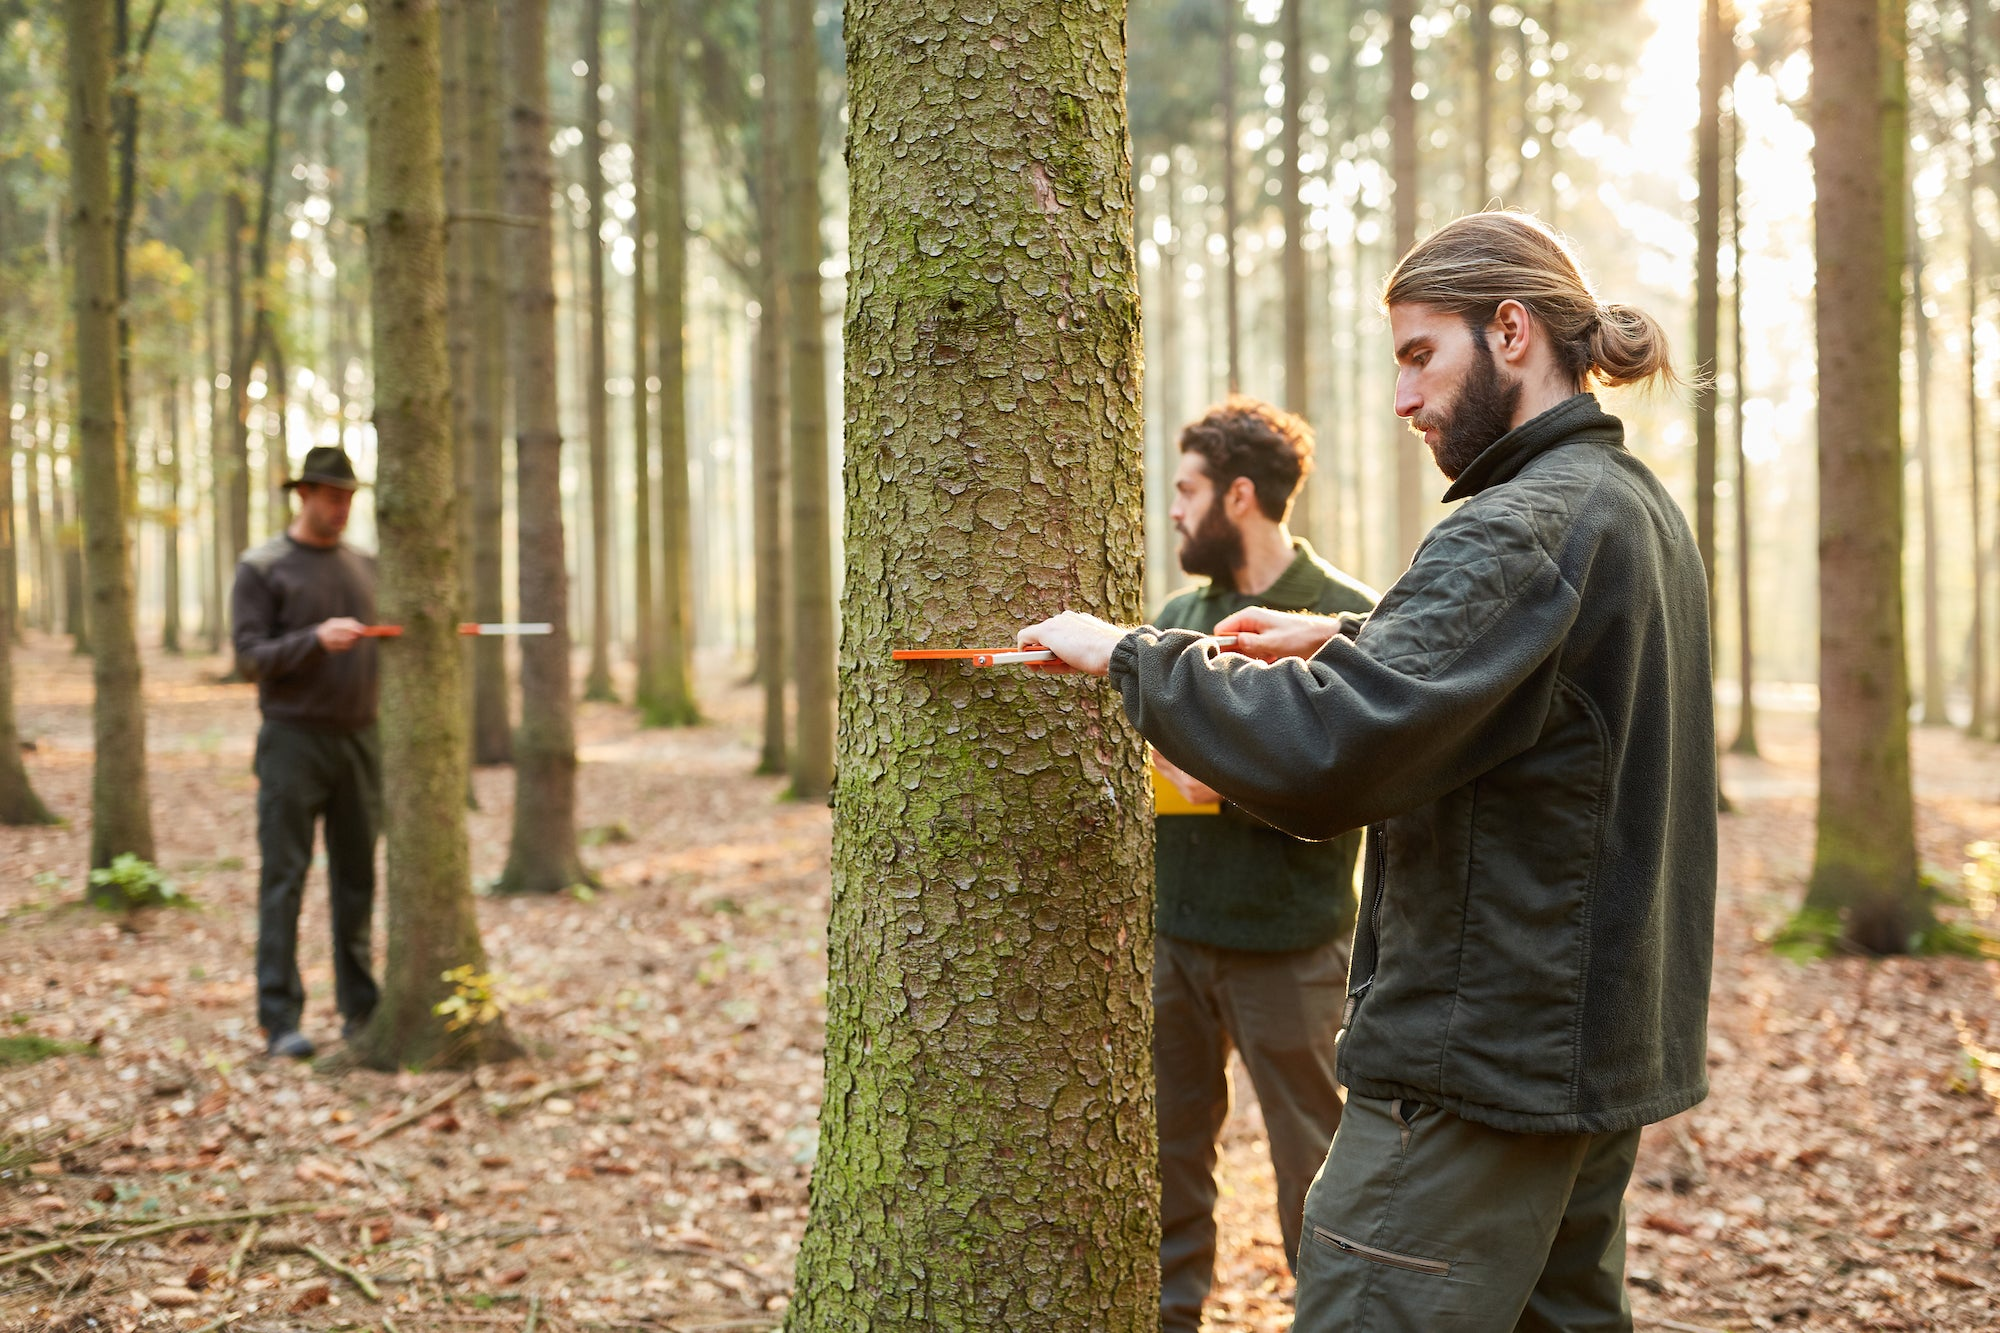 Men measuring Diameter at Breast Height (DBH) in a forest